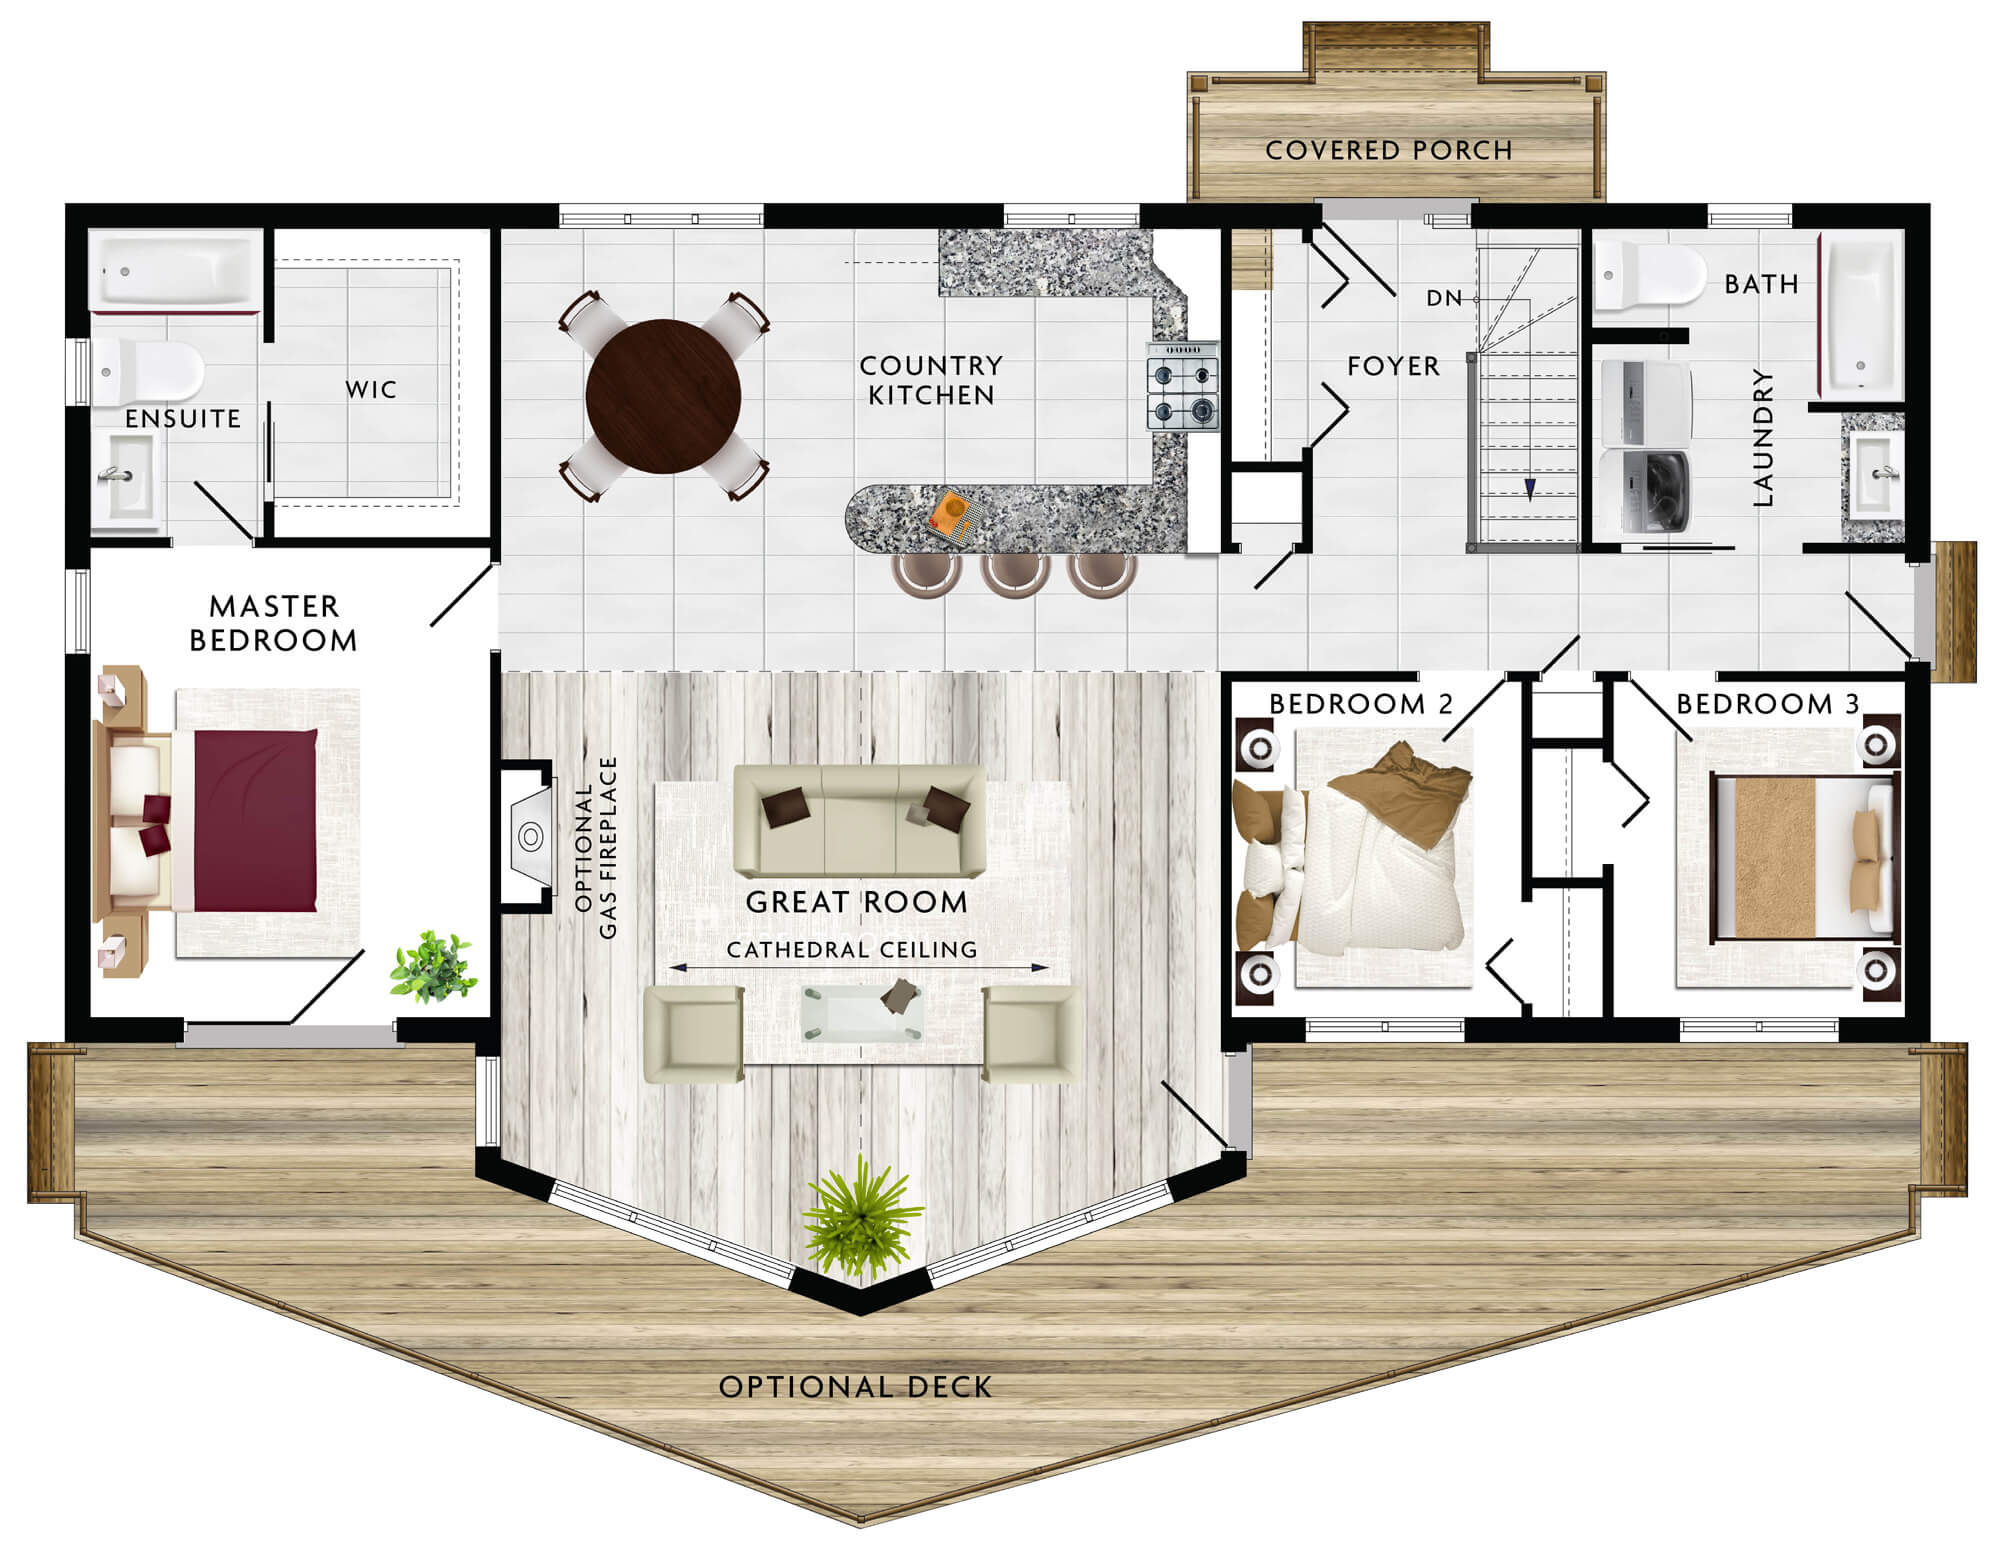 Beaver homes and cottages banff ii - One level house plans with basement paint ...